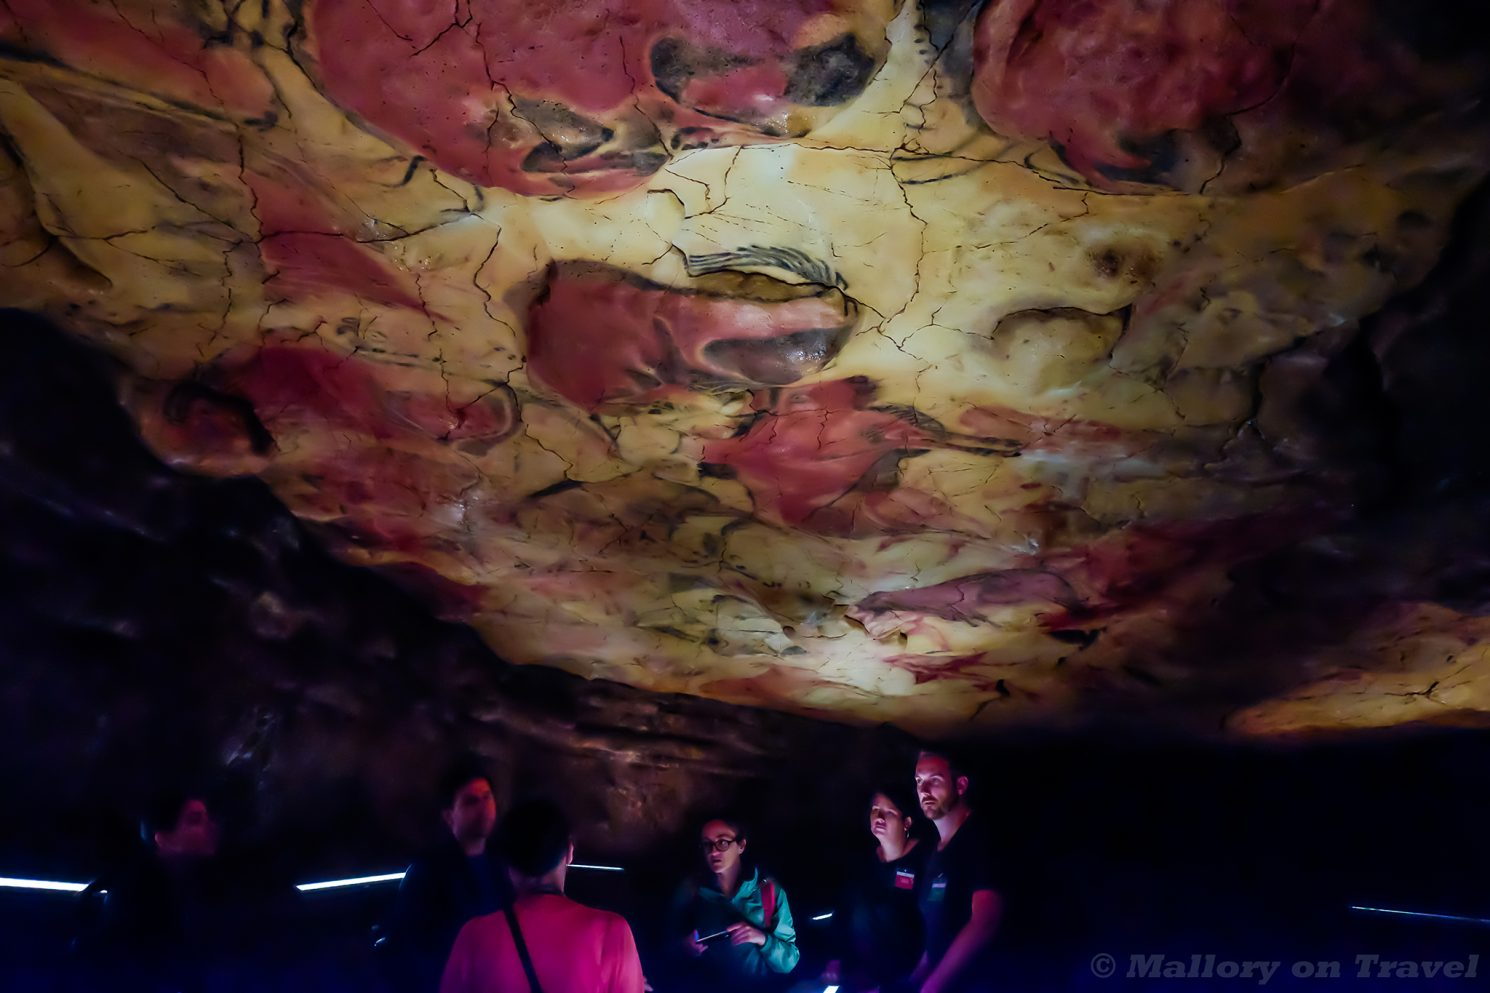 Visitors under the rock art of the Altamira Cave, Cantabria a Spanish World heritage Site on Mallory on Travel adventure travel, photography, travel Iain Mallory_Spain6889